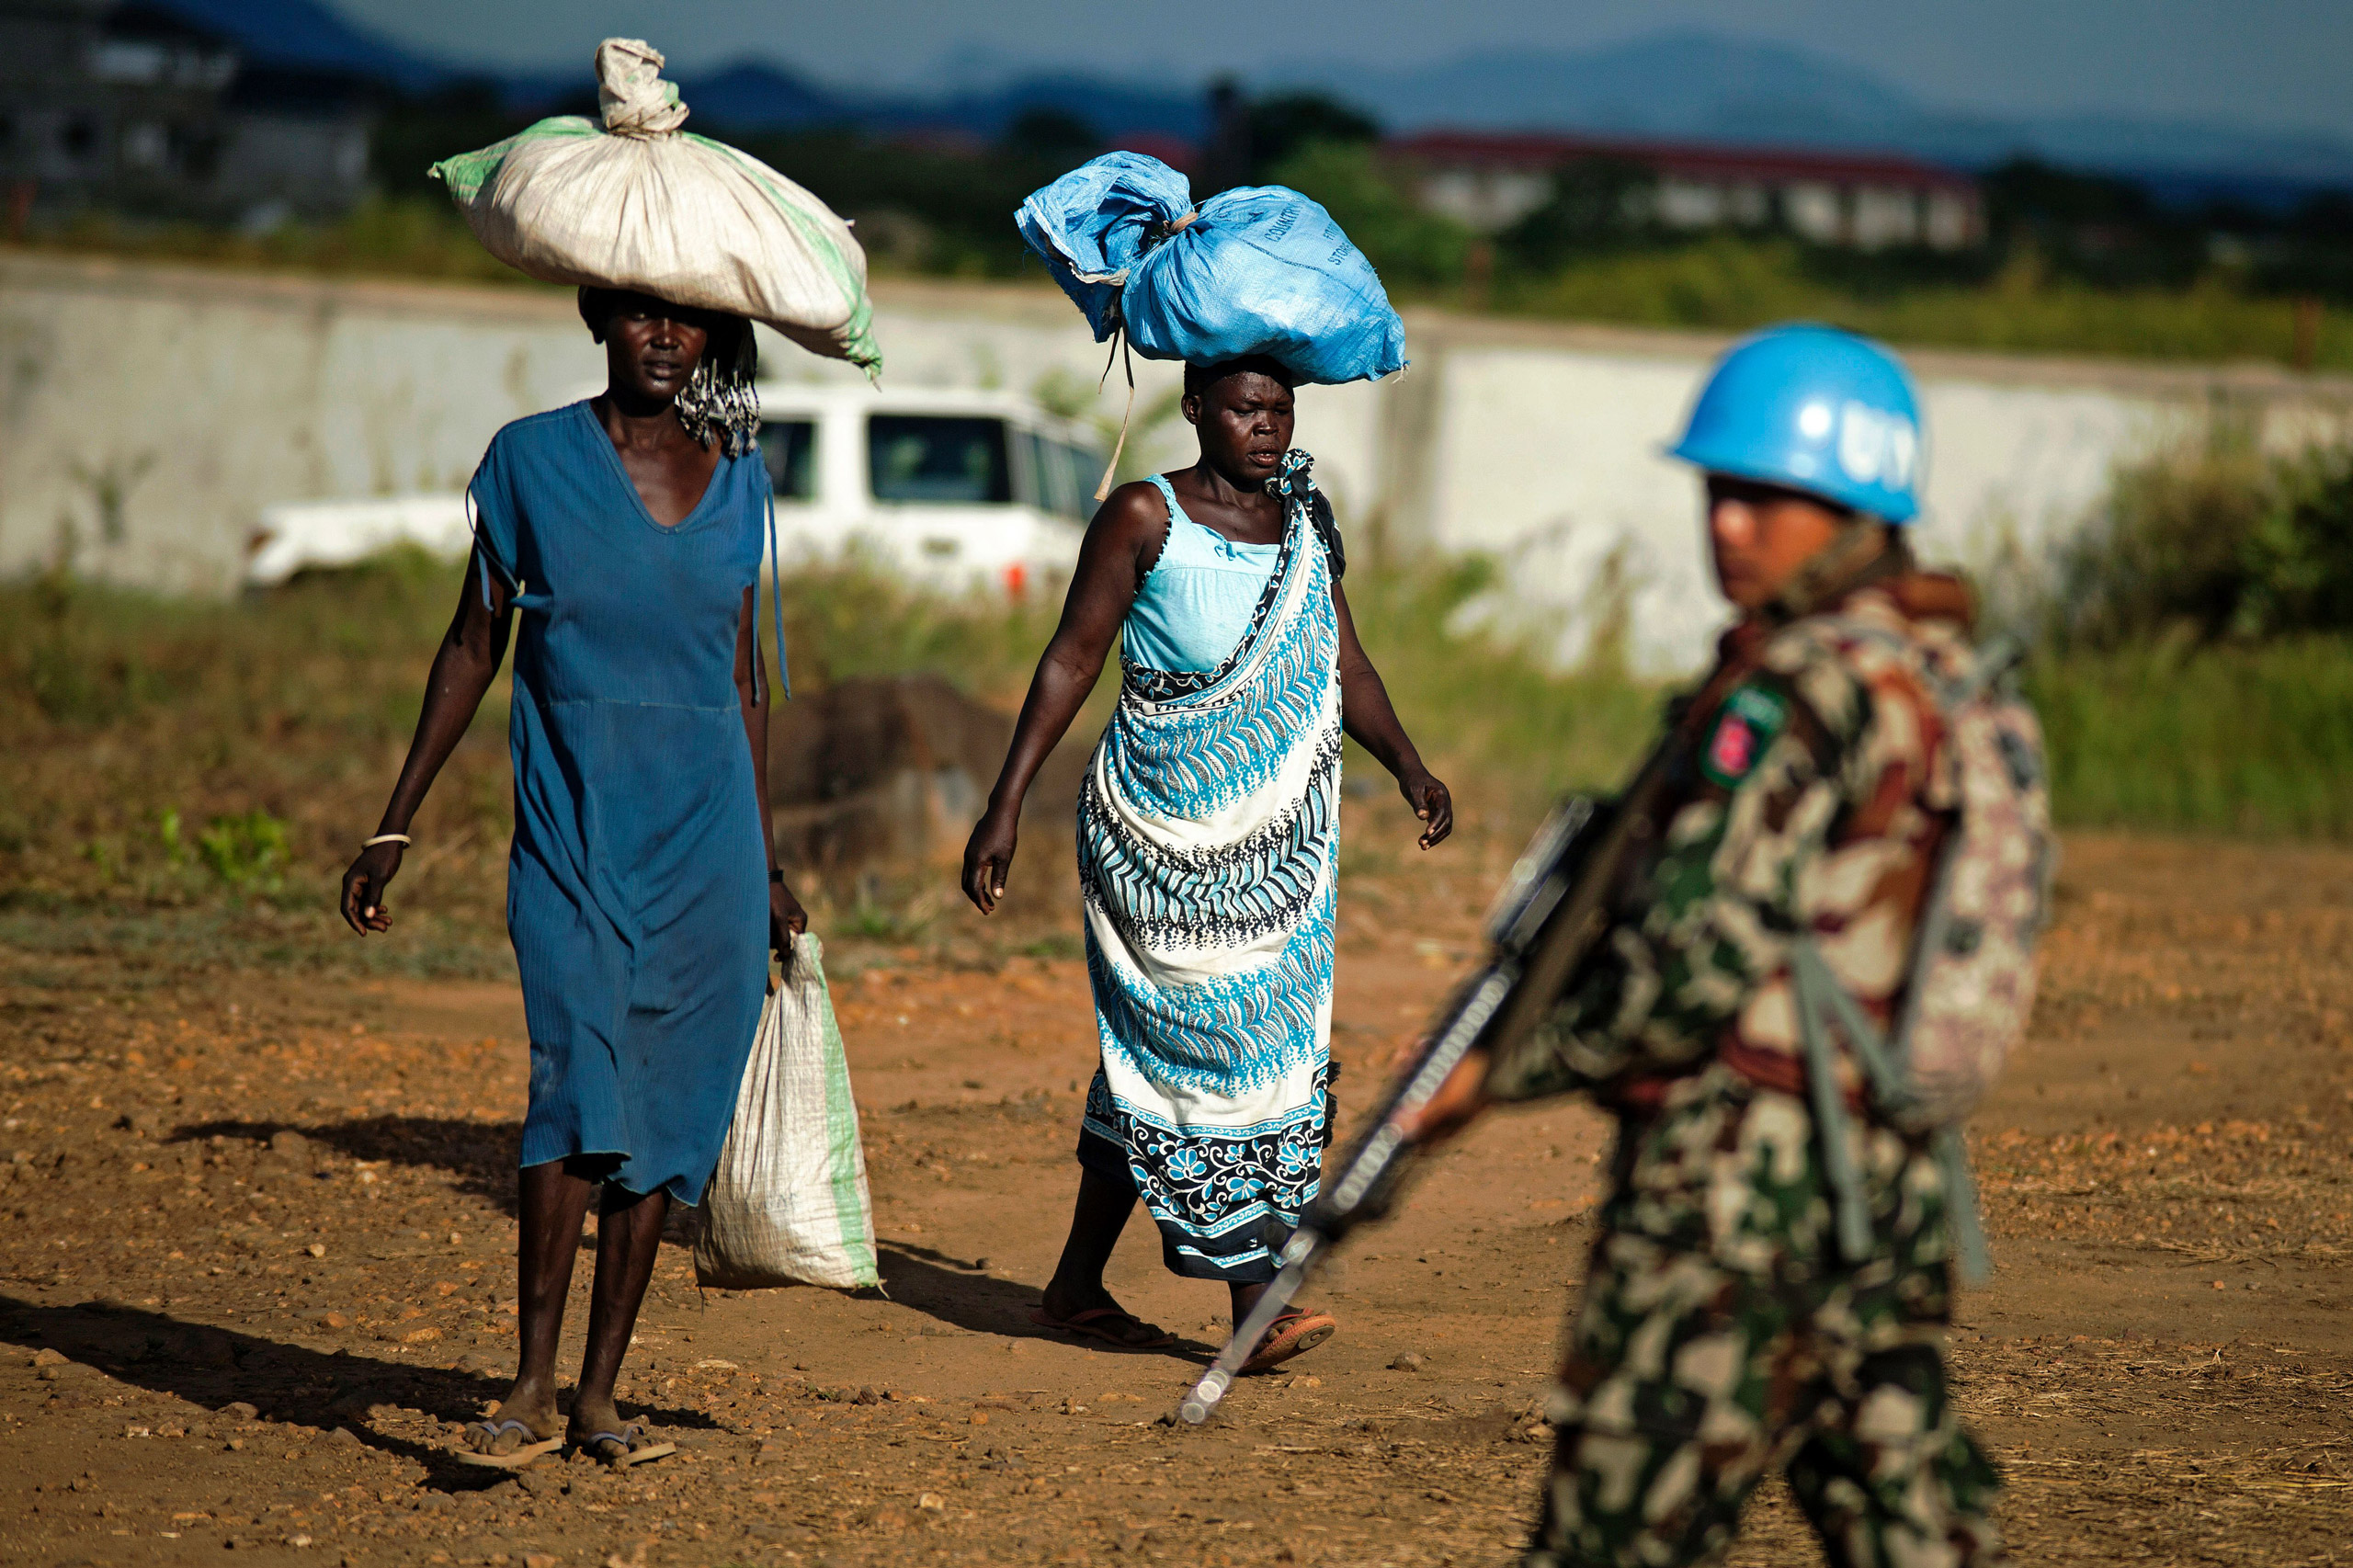 Displaced women carry goods as a Nepalese peacekeeper from the United Nations Mission in South Sudan (UNMISS) patrols outside the premises of the UN Protection of Civilians (PoC) site in Juba on Oct. 4, 2016.